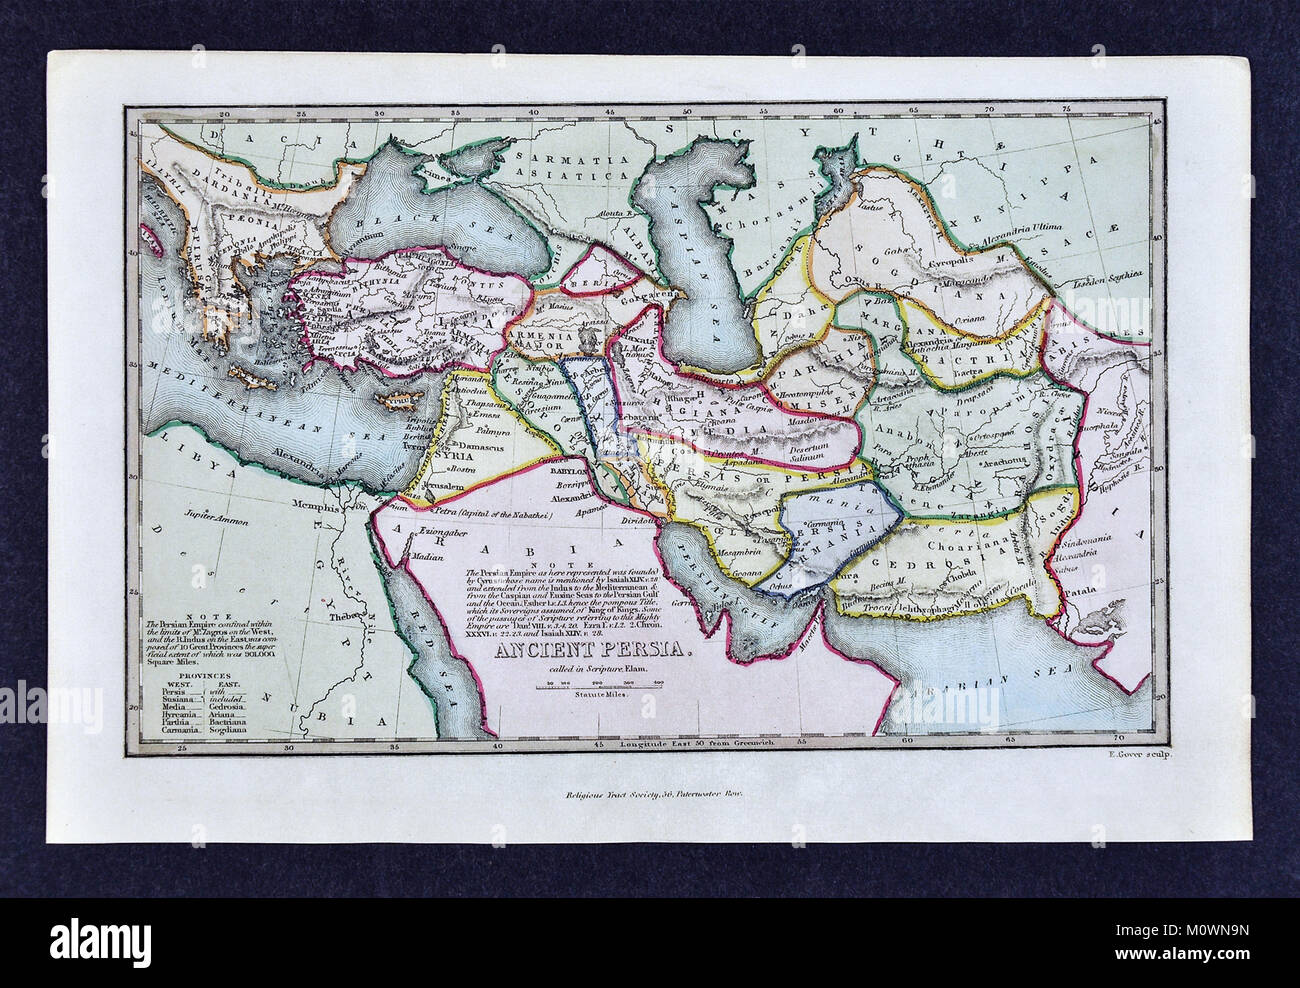 1799 Bible Tract Society Map - Ancient Persia or Elam According to the Old Testament - Stock Image